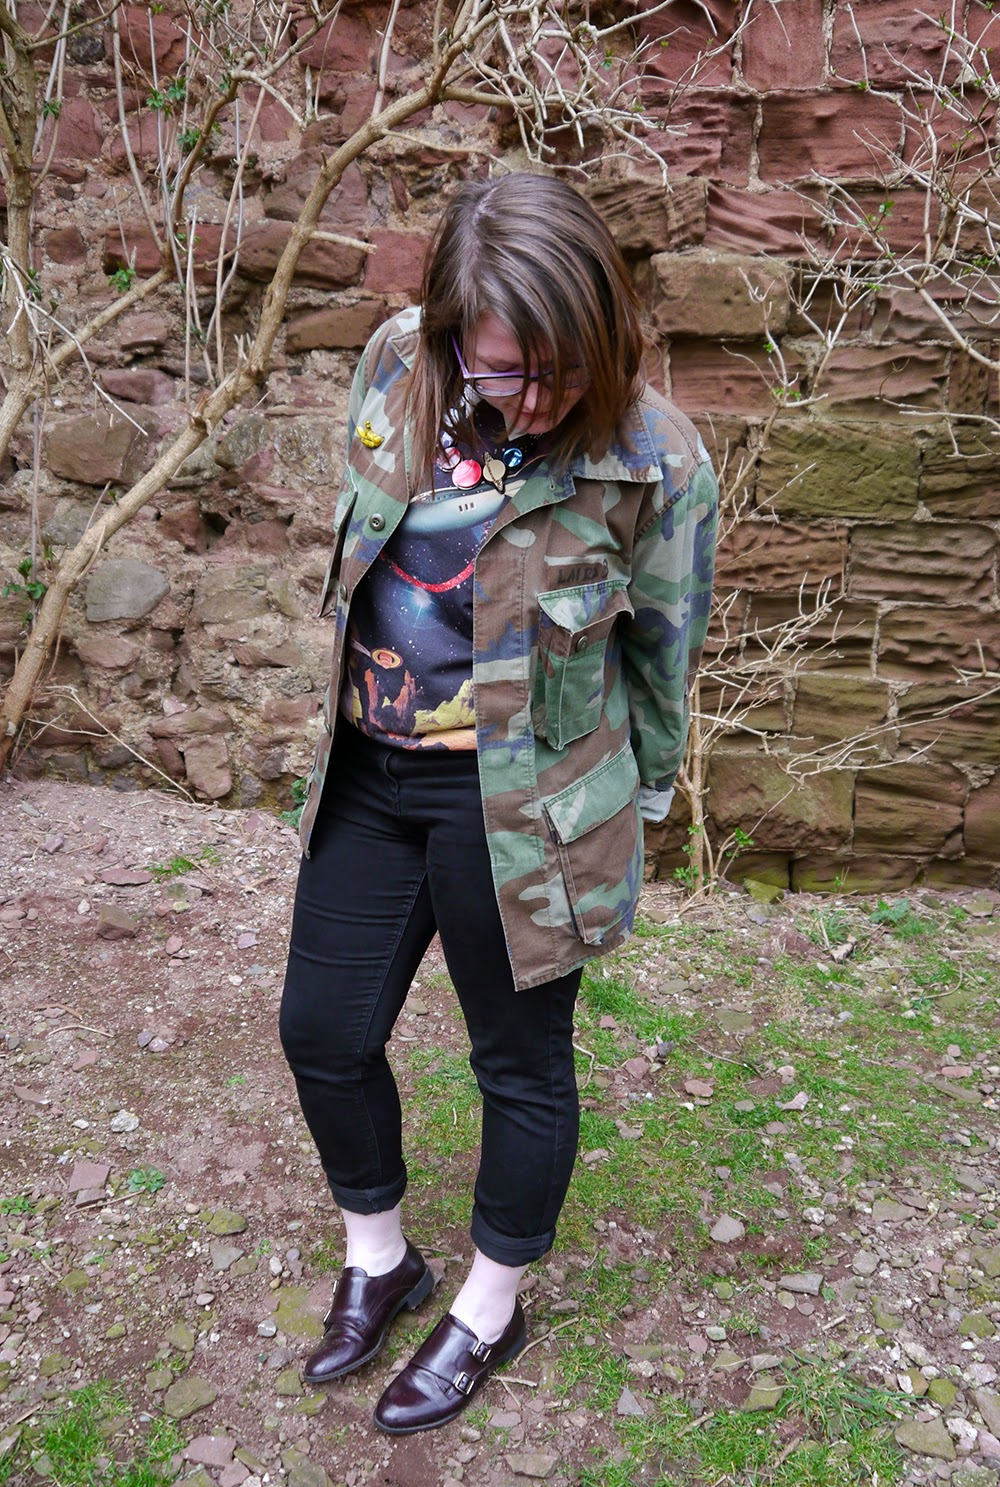 Be Our Guest, Guest Post, Little Sister, Scottish Blogger, Heather Mac, Mac In Your Face, Space Style, Topshop space jumper, Sugar & Vice space necklace, Lunan bay, Red Castle, Scotalnd, outfit post, camoflage jacket